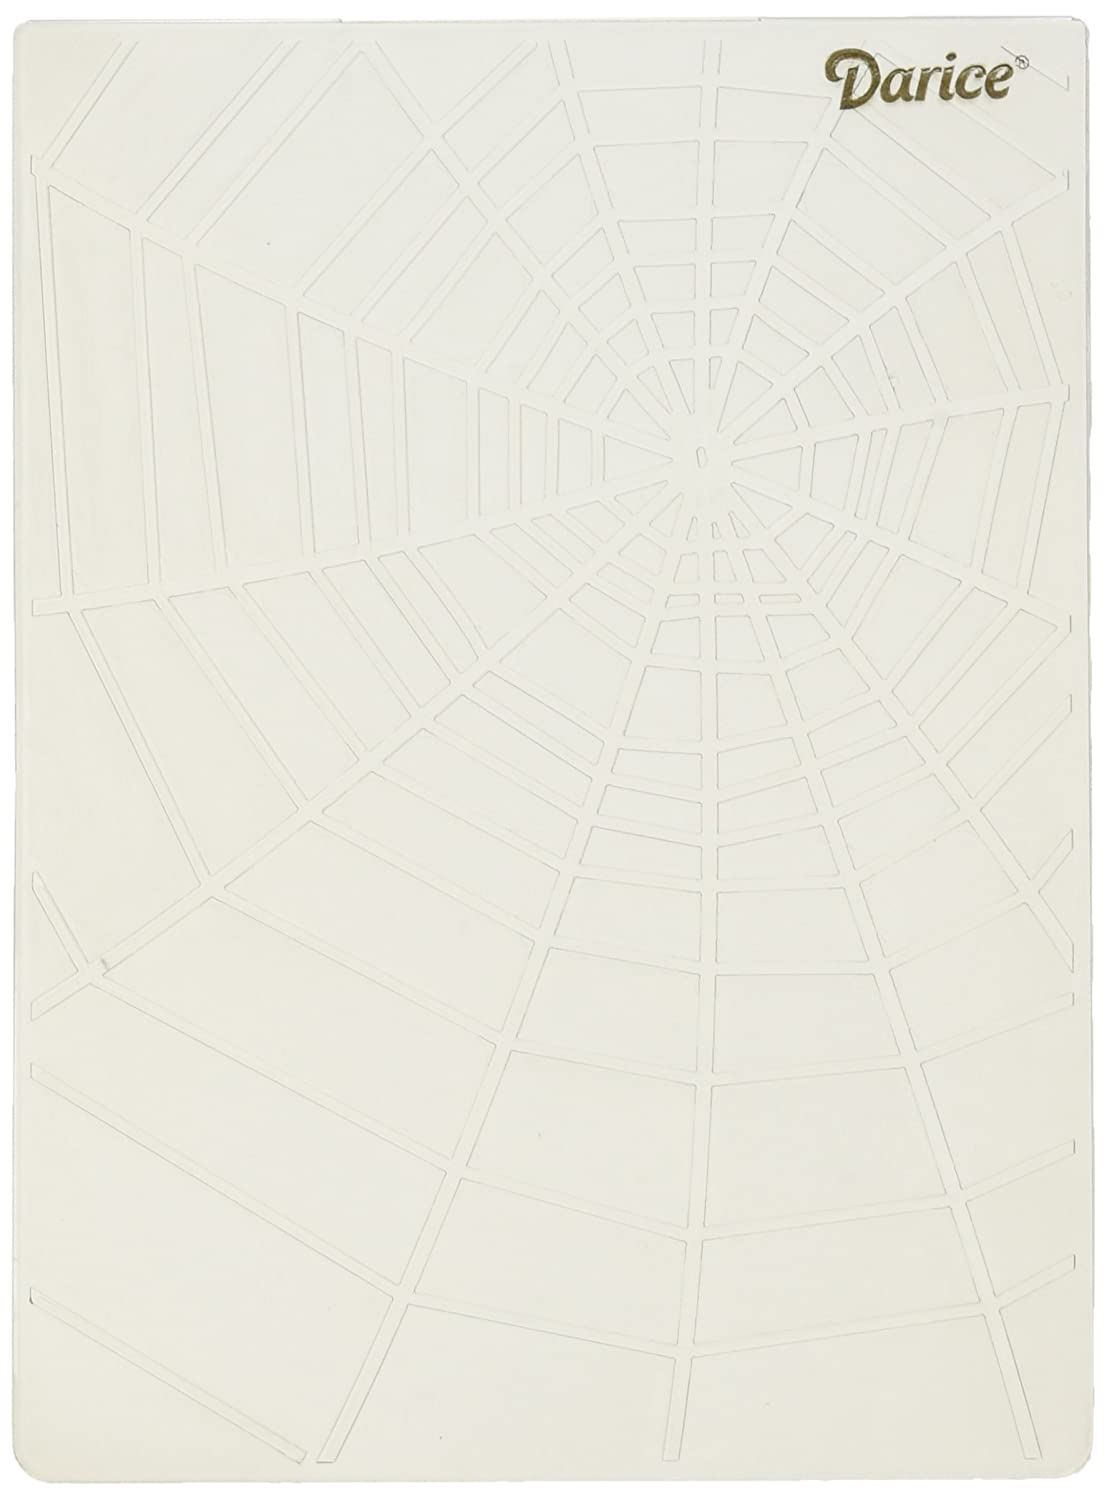 Darice Embossing Folder - Template Spider Web - 10.8 x 14.6 cm, Transparent 1219-215